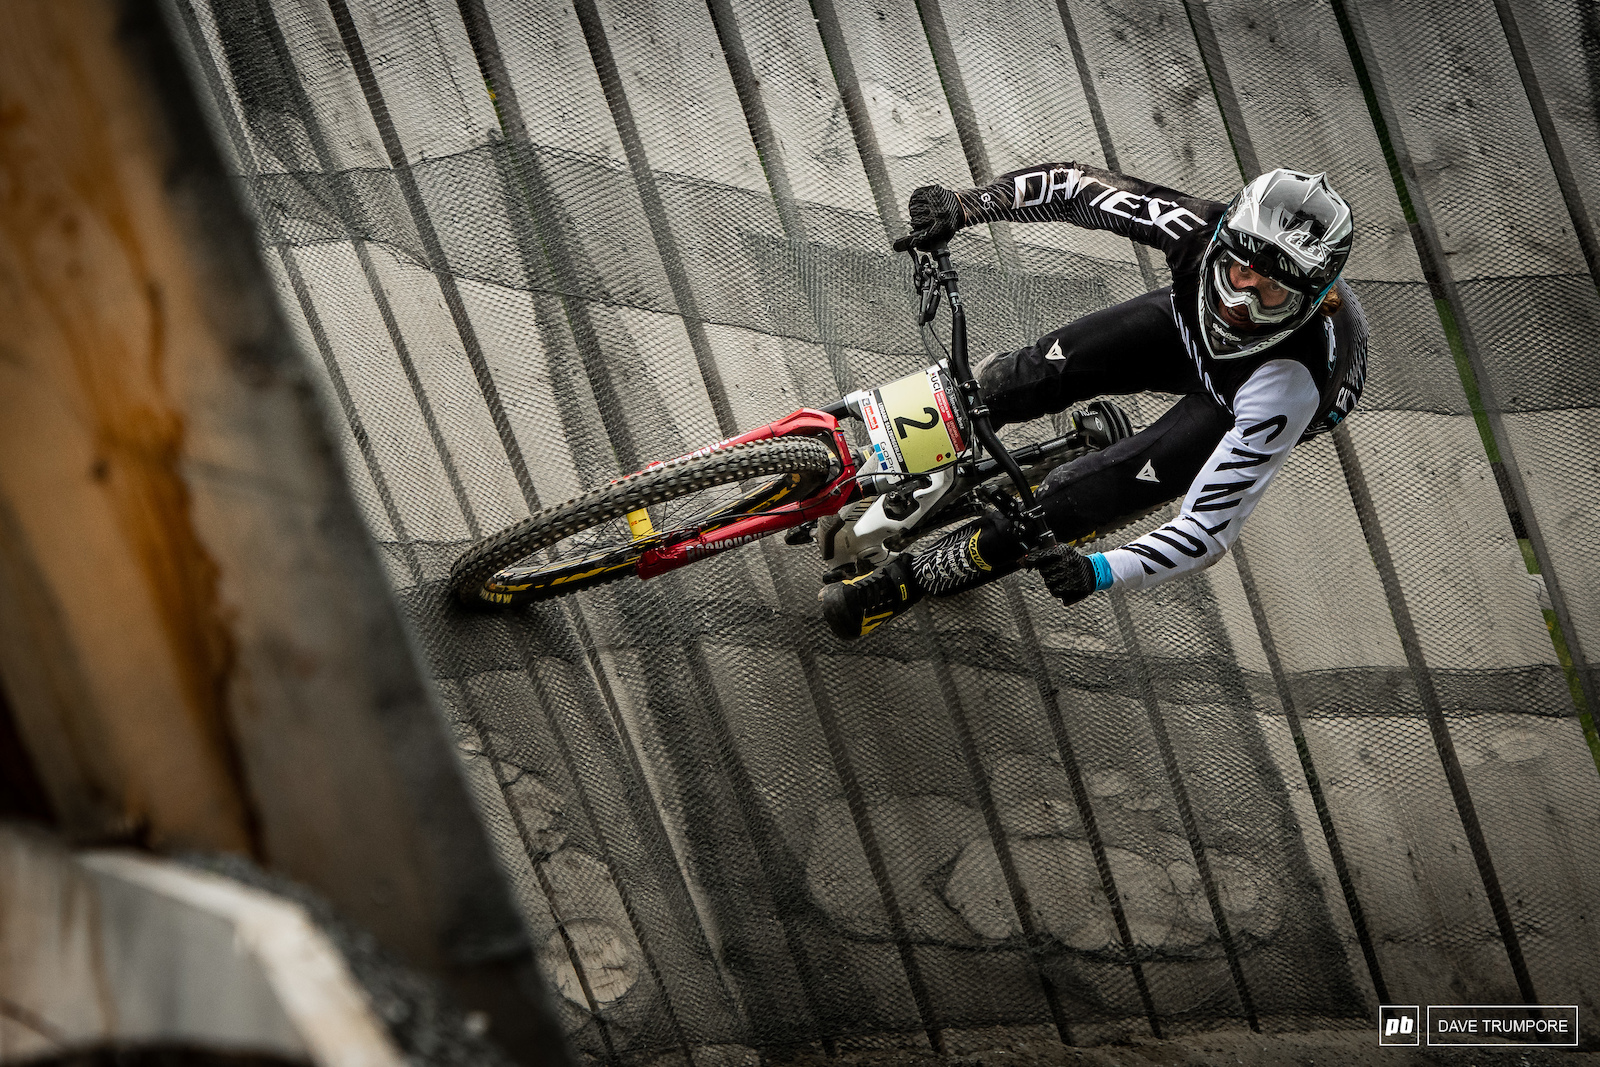 Kye A hern won his first junior race last week in Fort William and is looking to back to back here in Leogang.